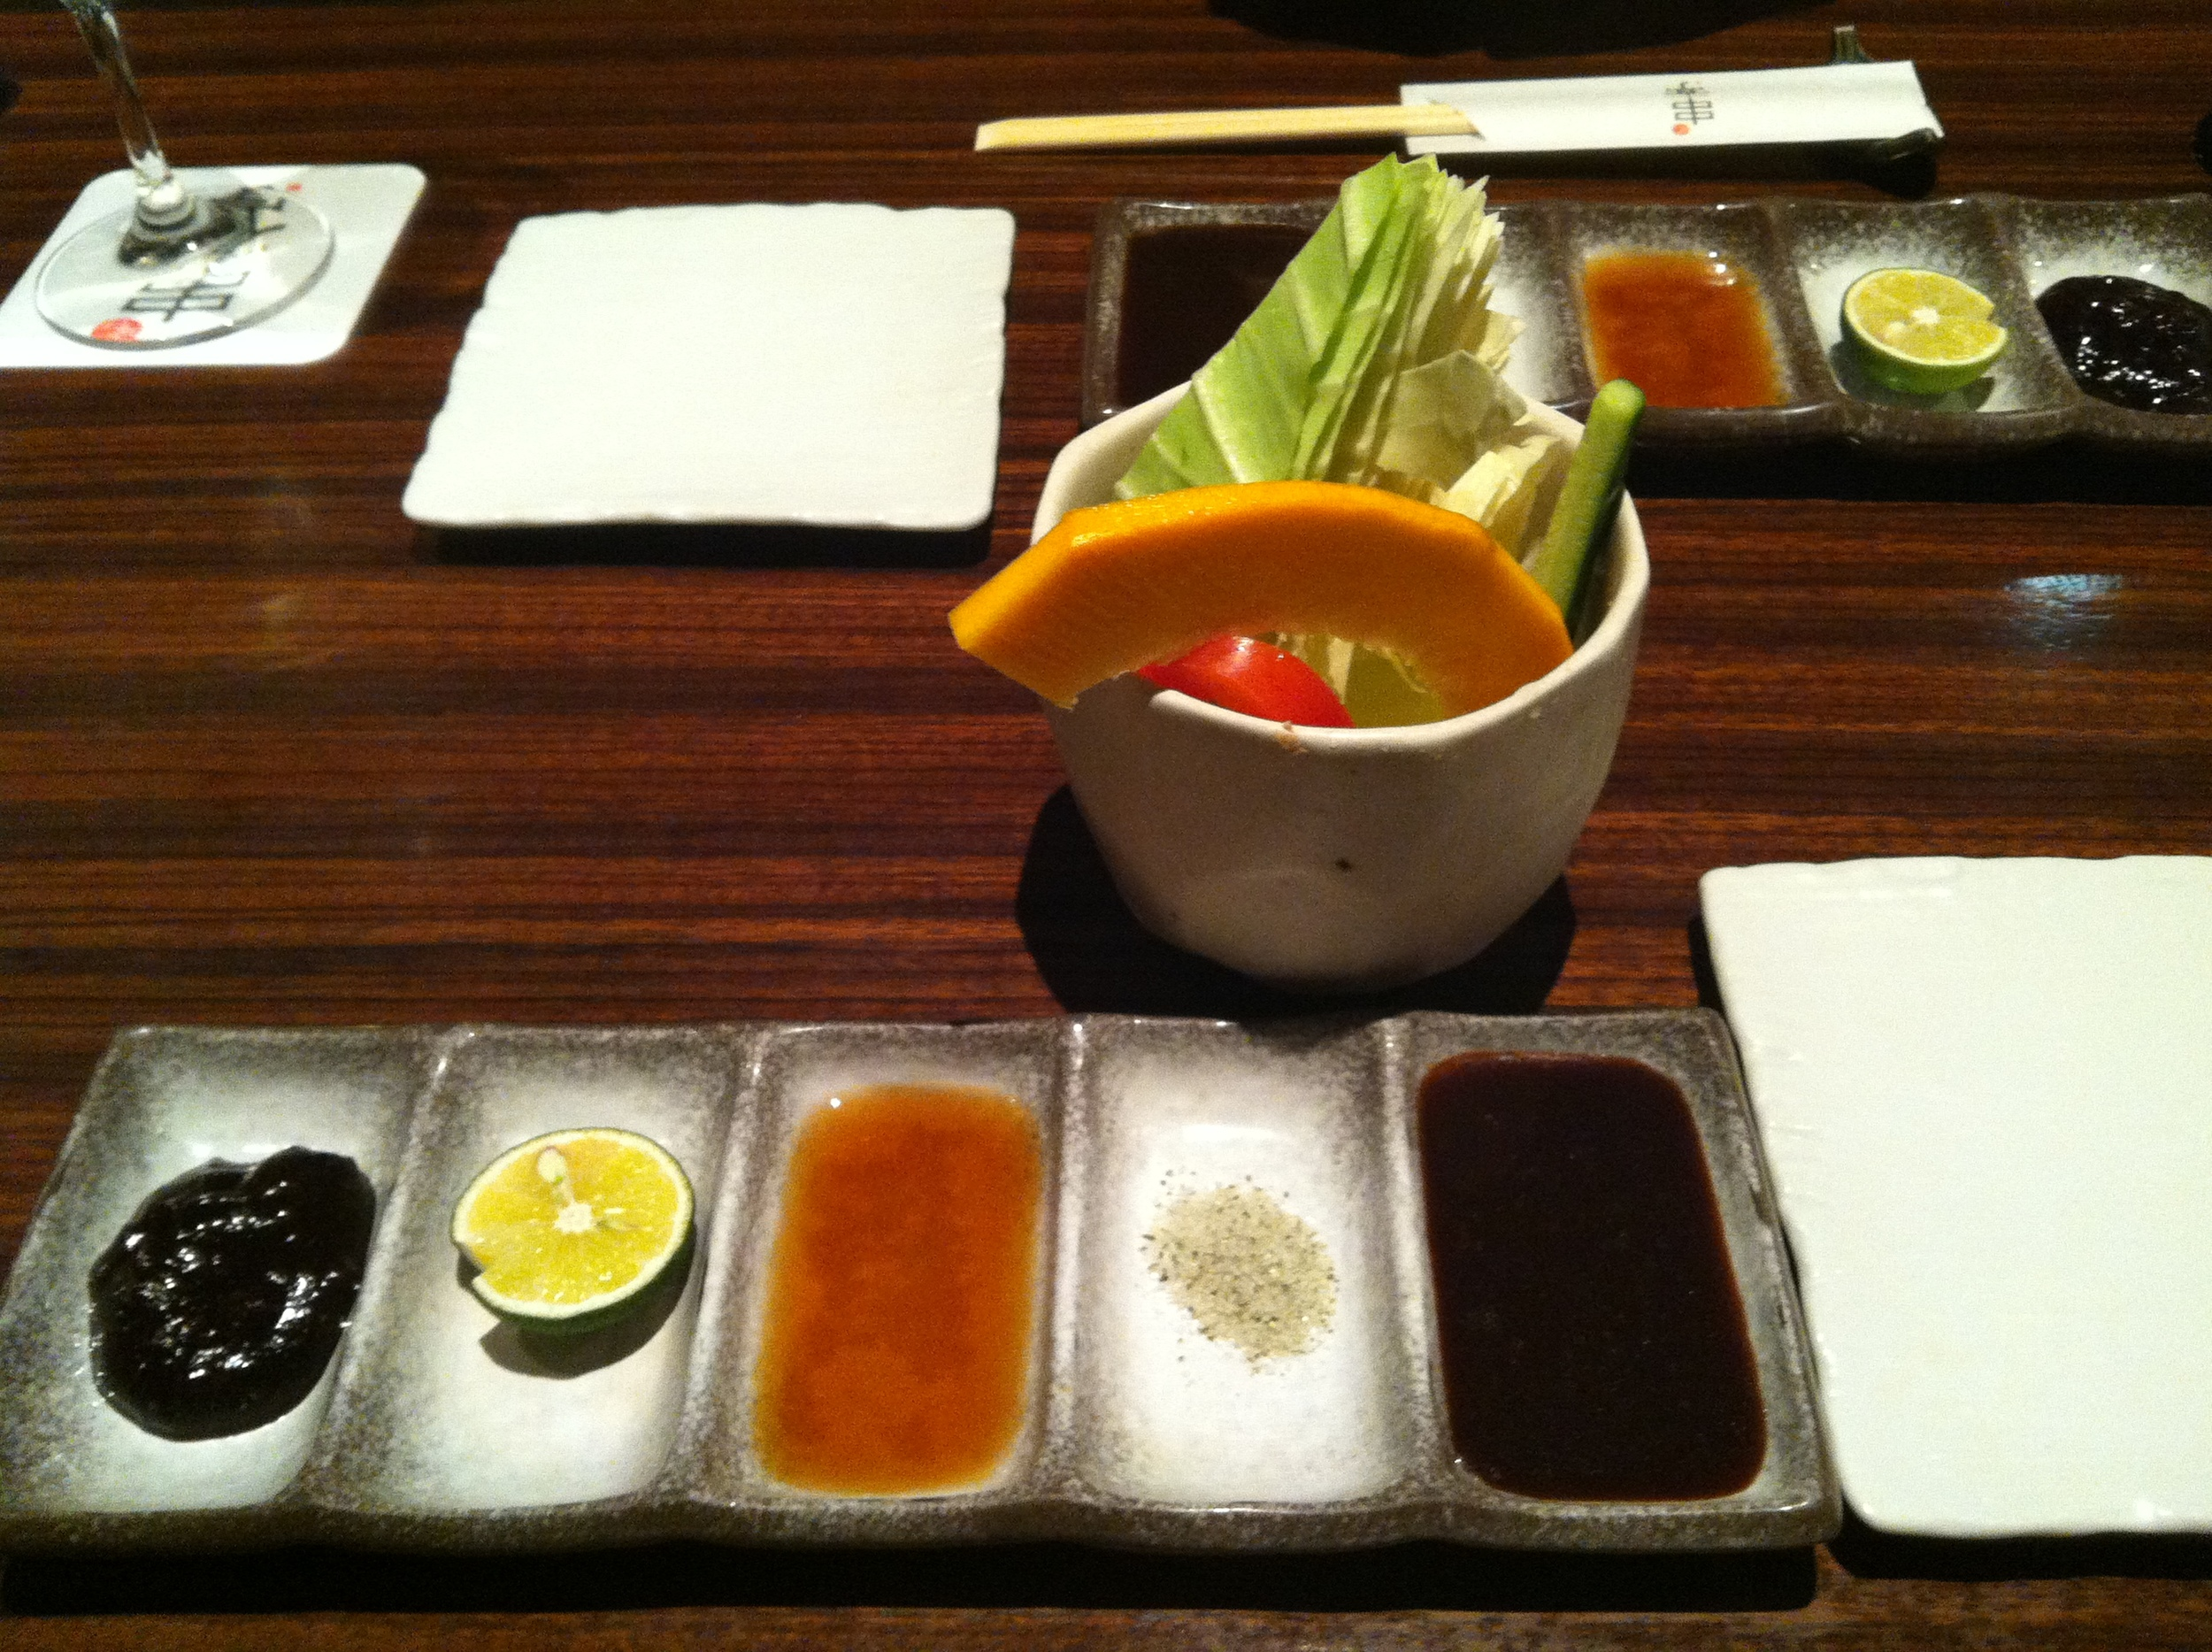 A beautiful meal at Kushitei Ebisuhonten showcasing traditional Osaka cuisine